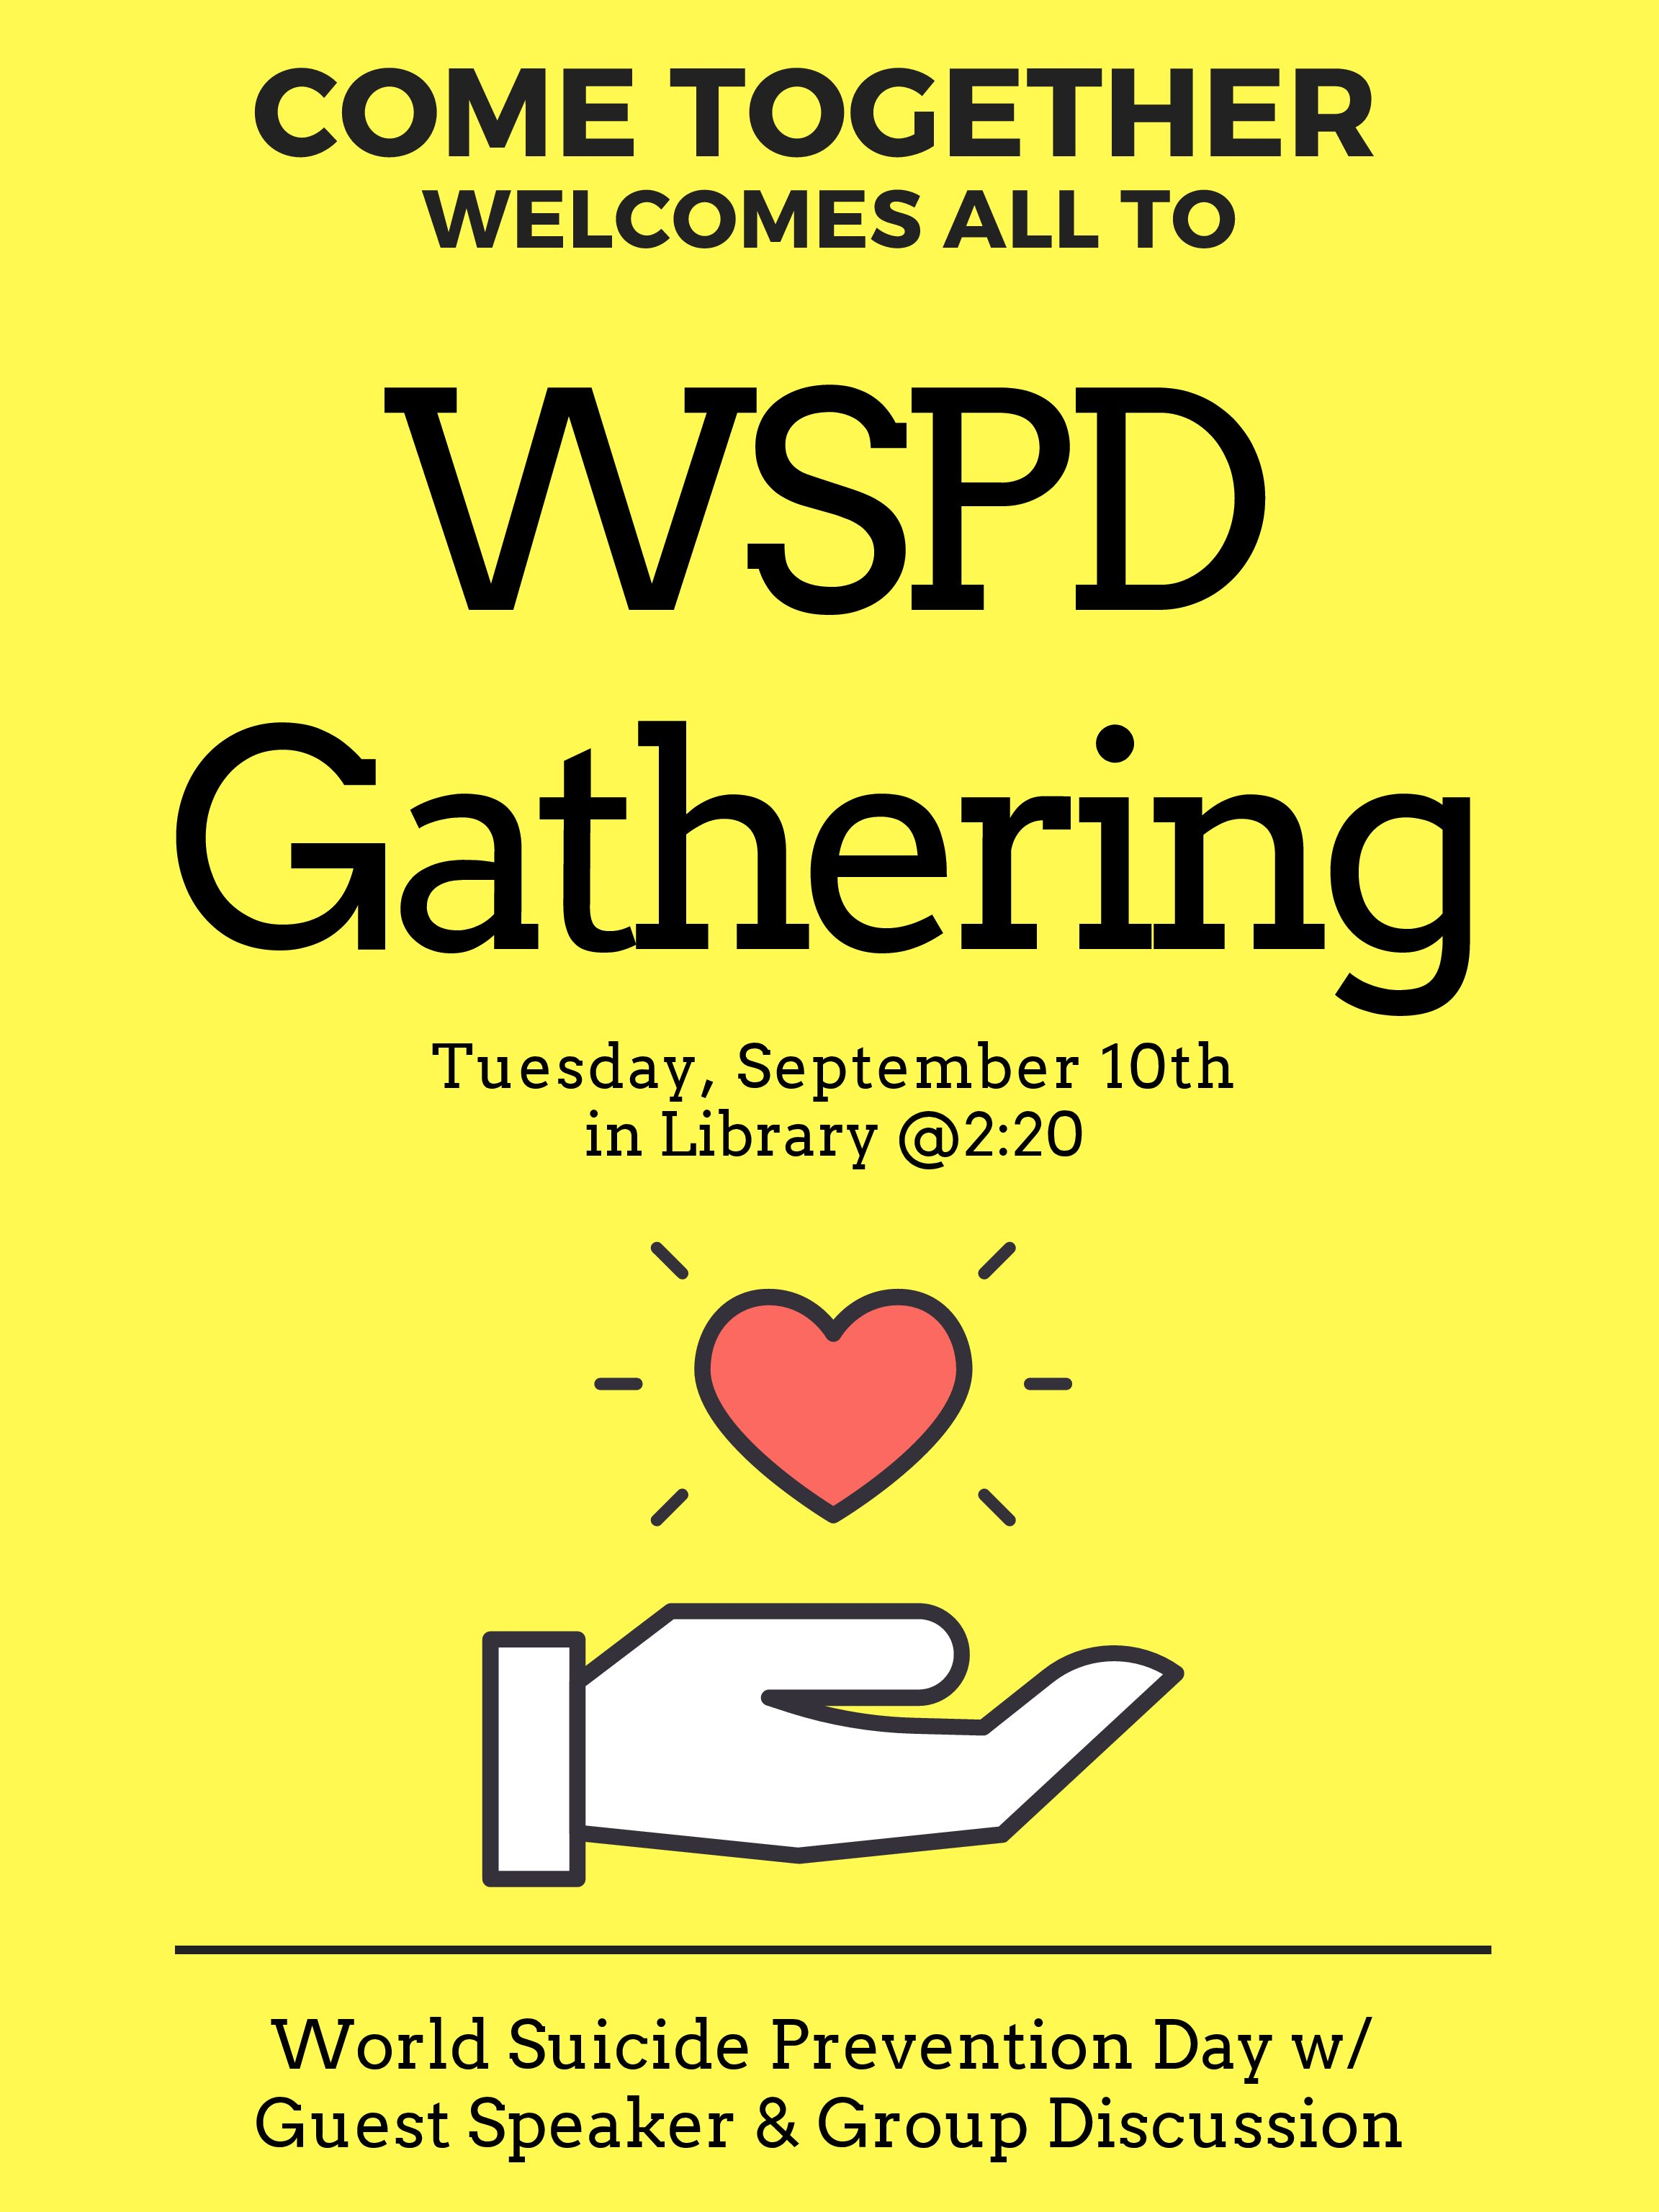 Come Together Club Has WSPD Gathering